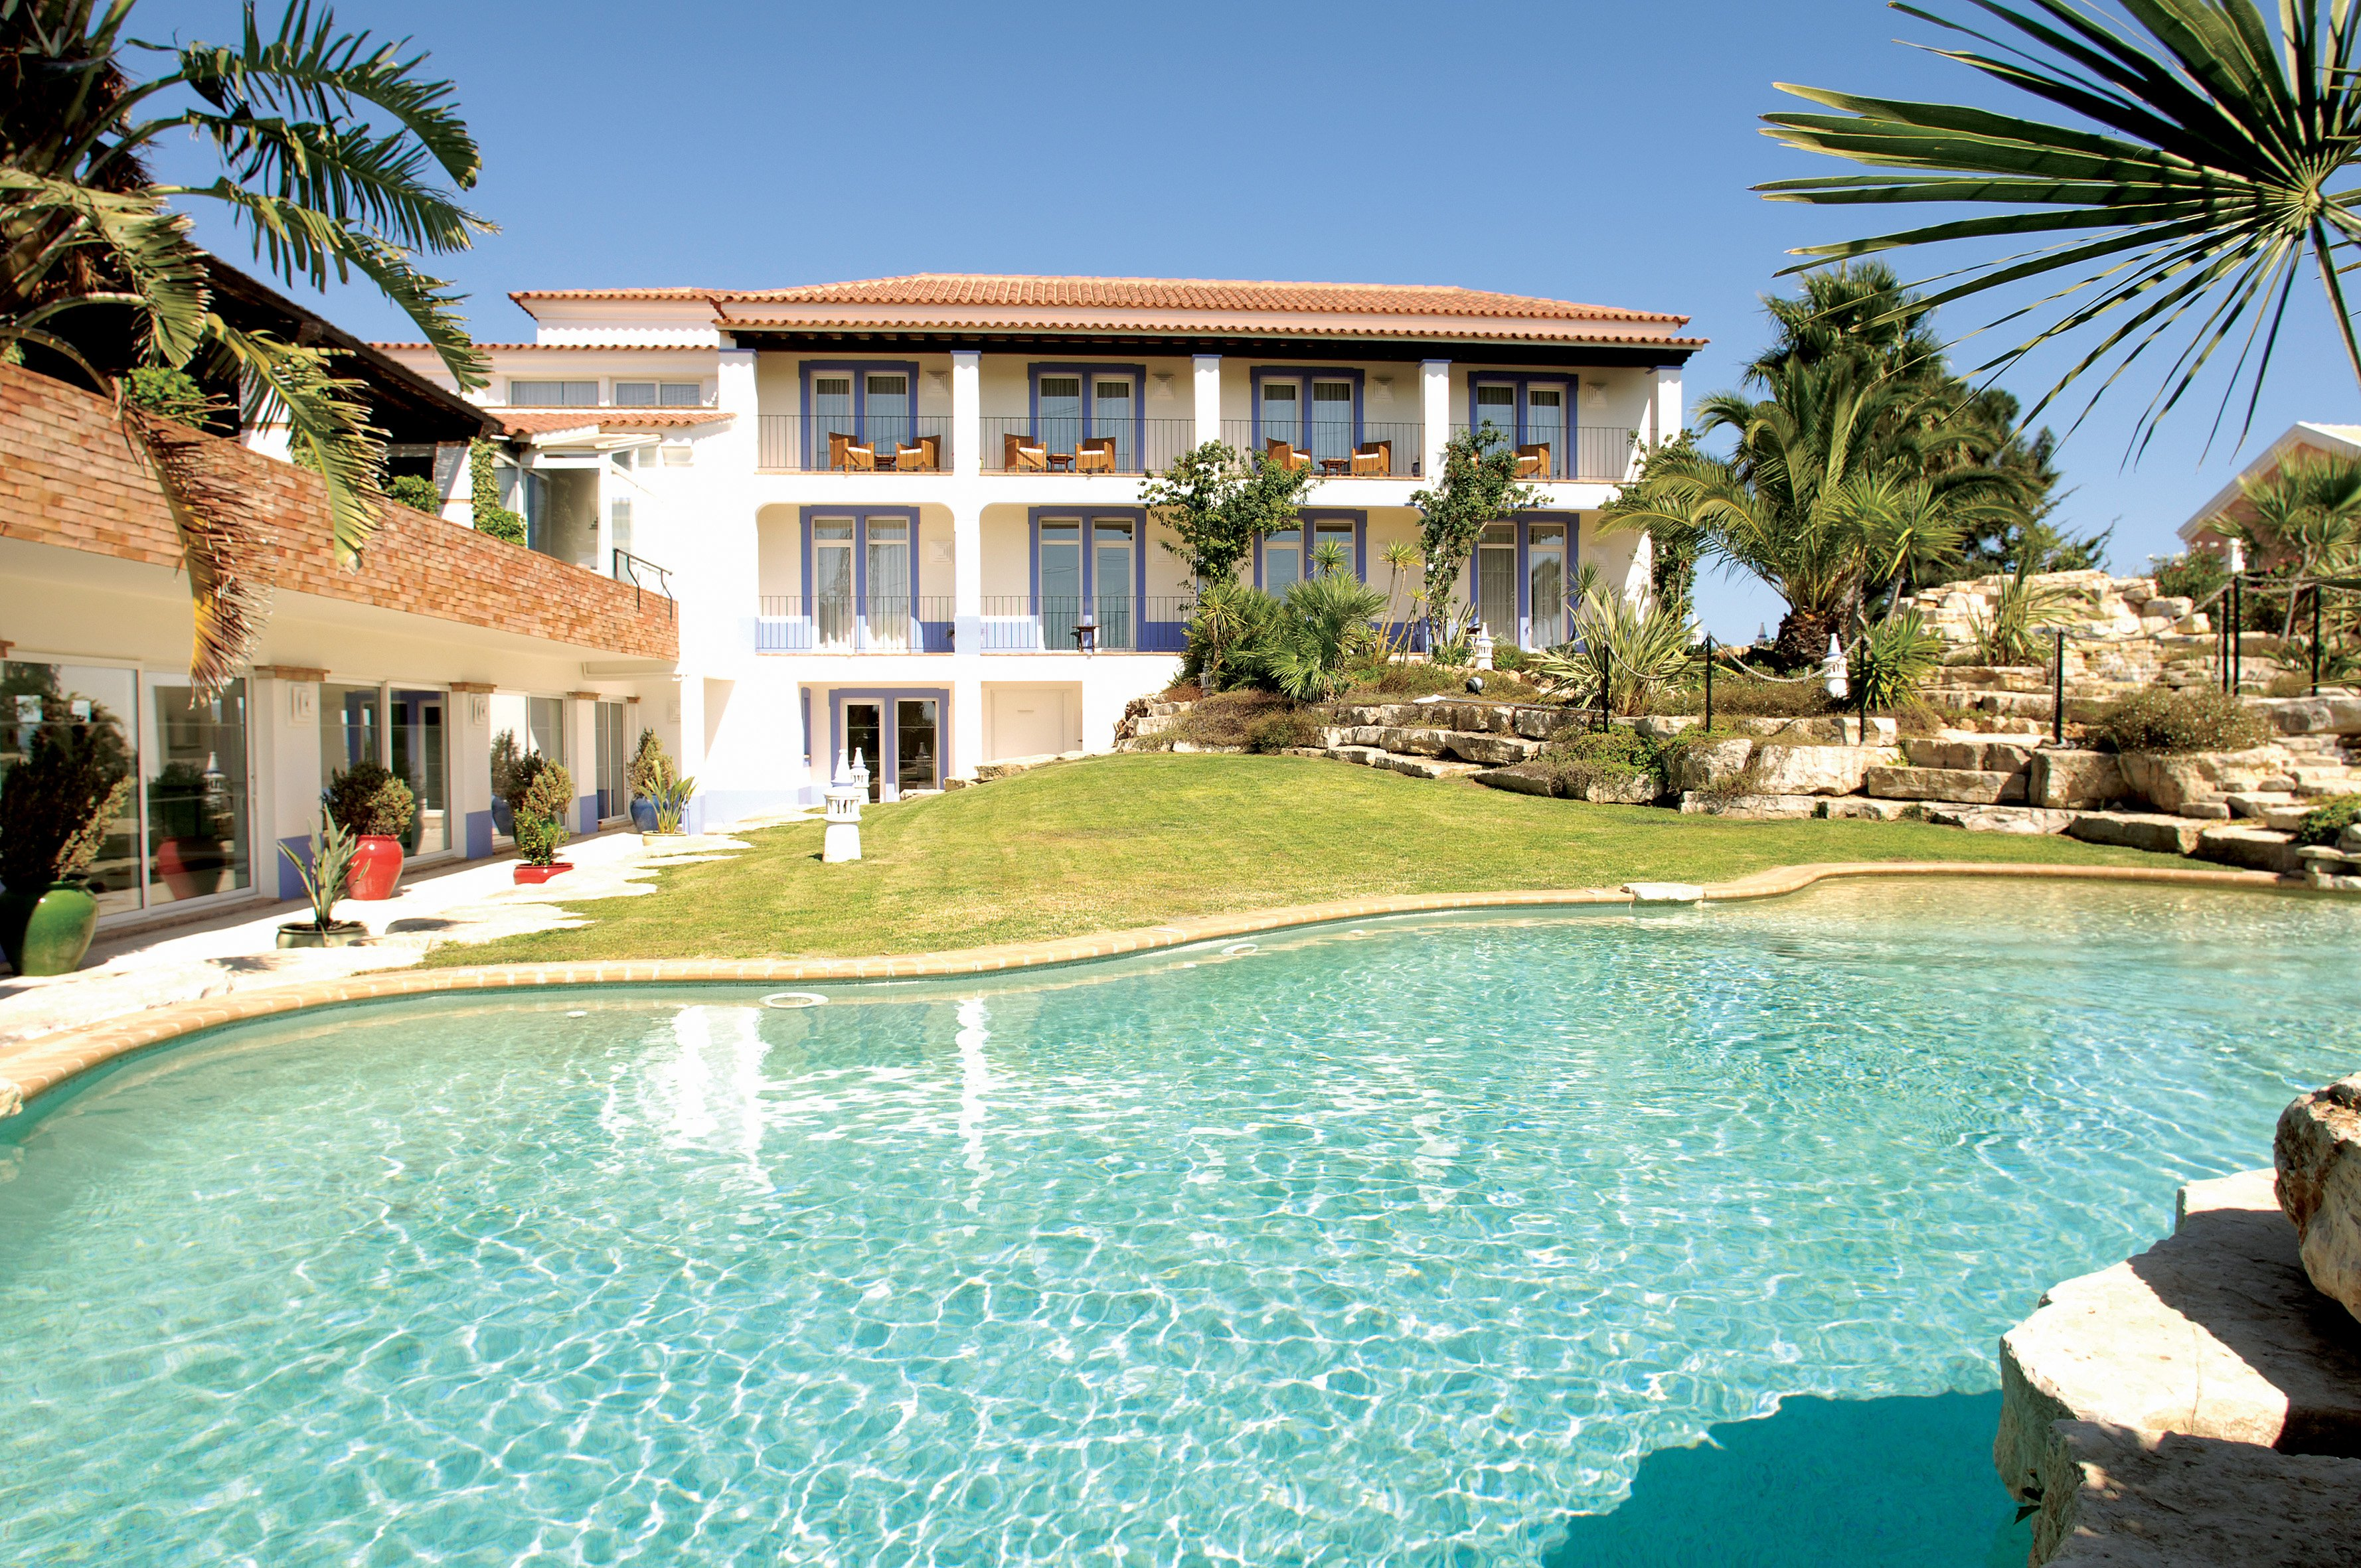 Boot camp abroad 7 day residential boot camp portugal for Knebel design pool ug